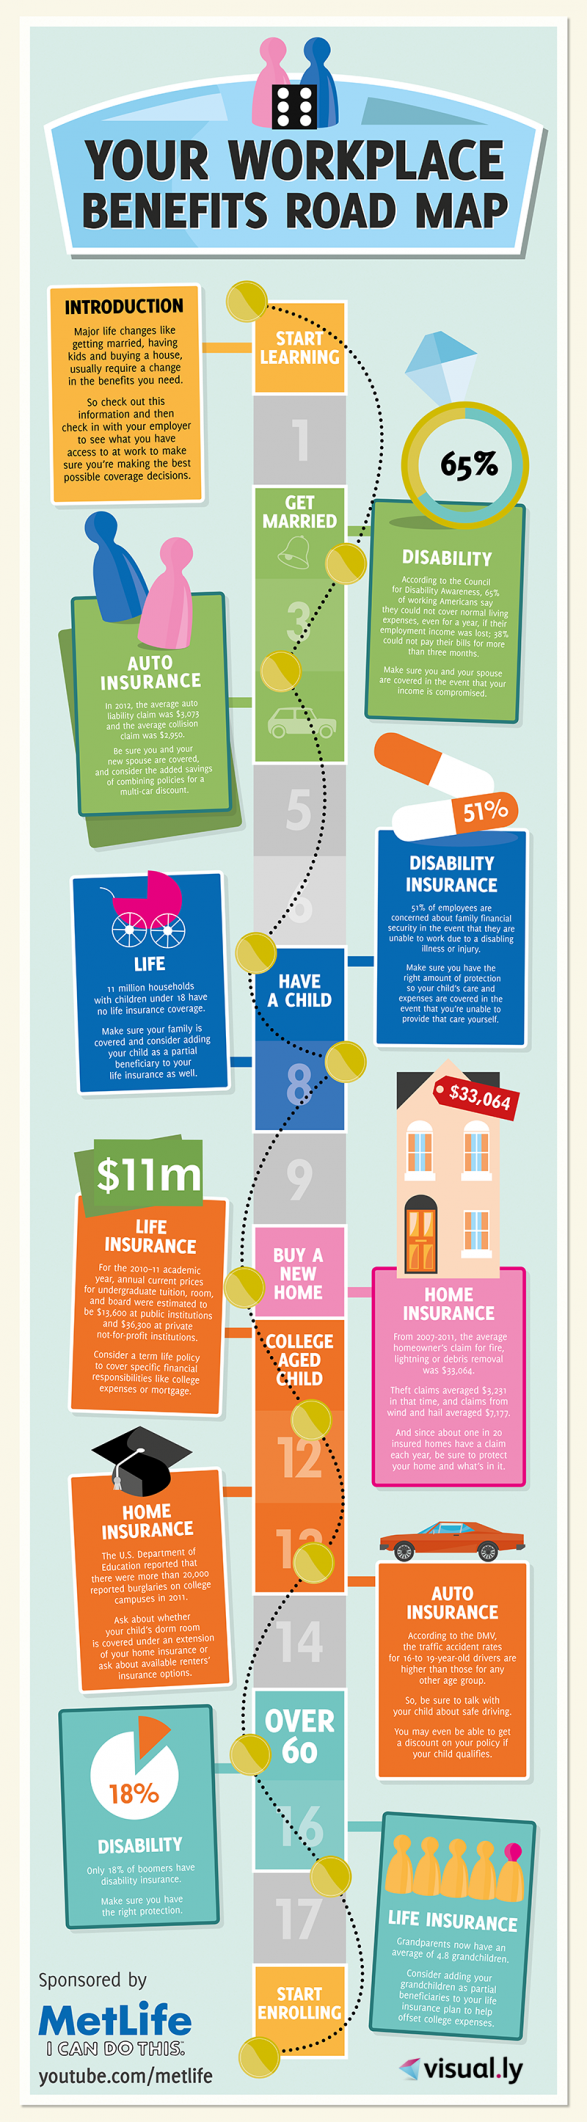 Your Workplace Benefits Road Map